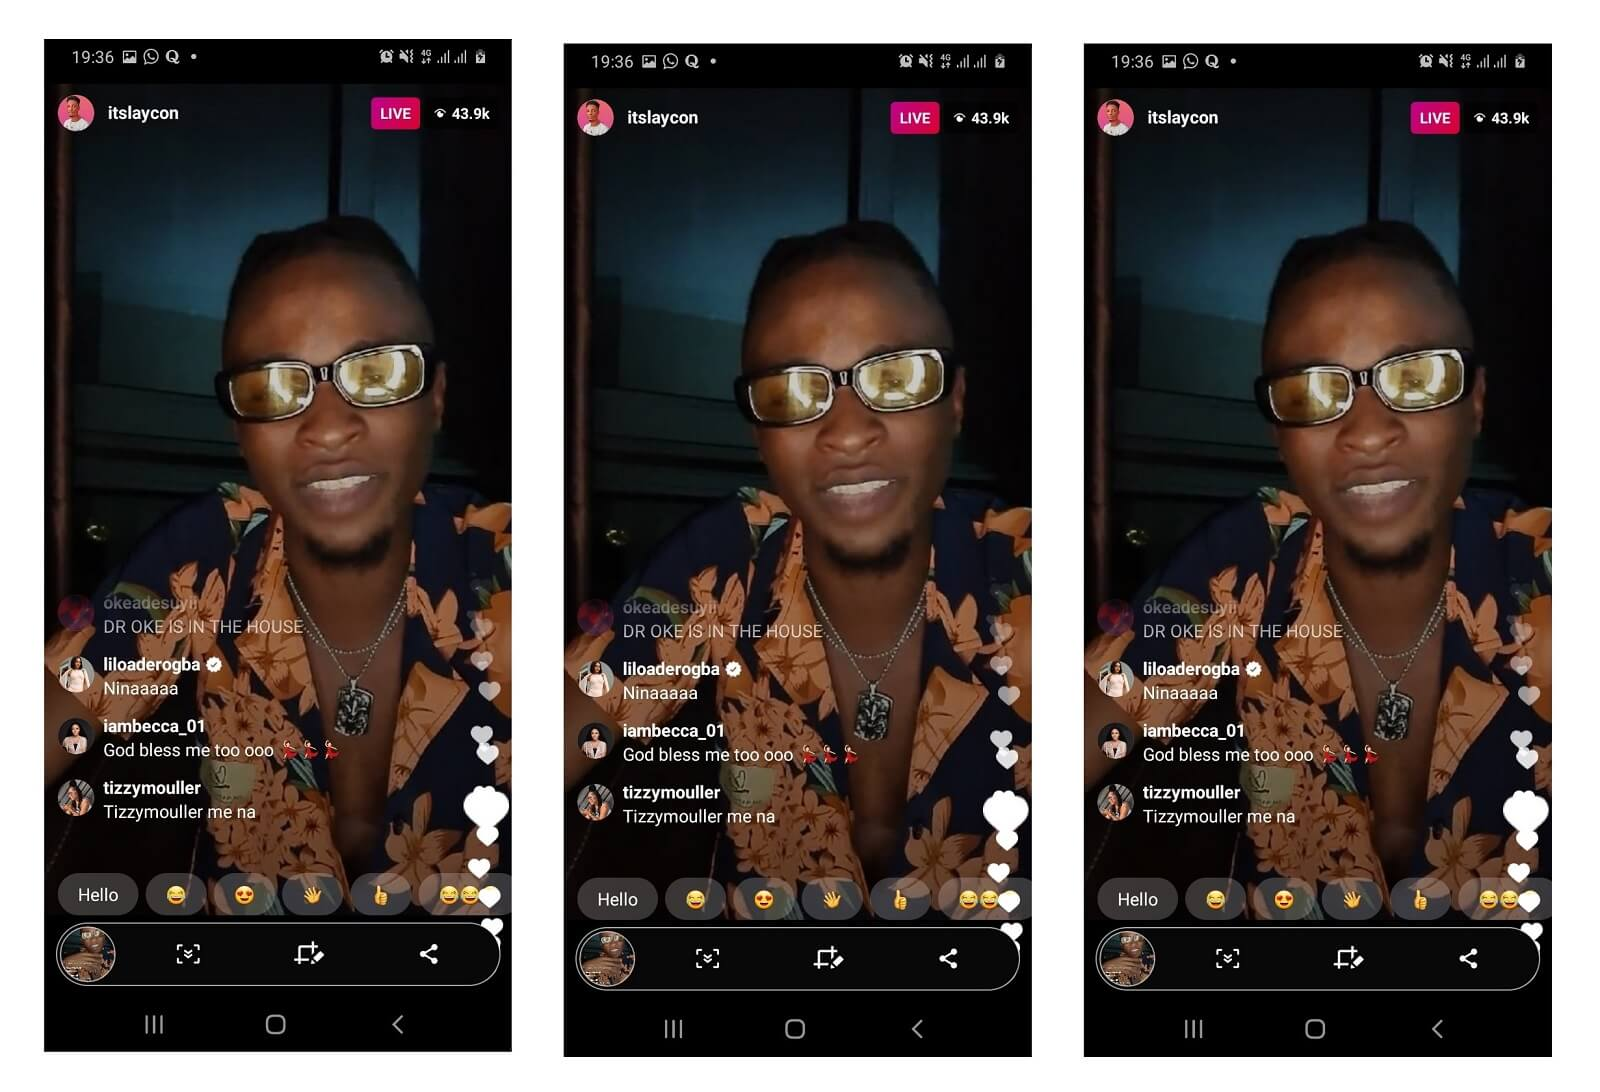 BBNaija Laycon's first Instagram live hosts over 43K viewers